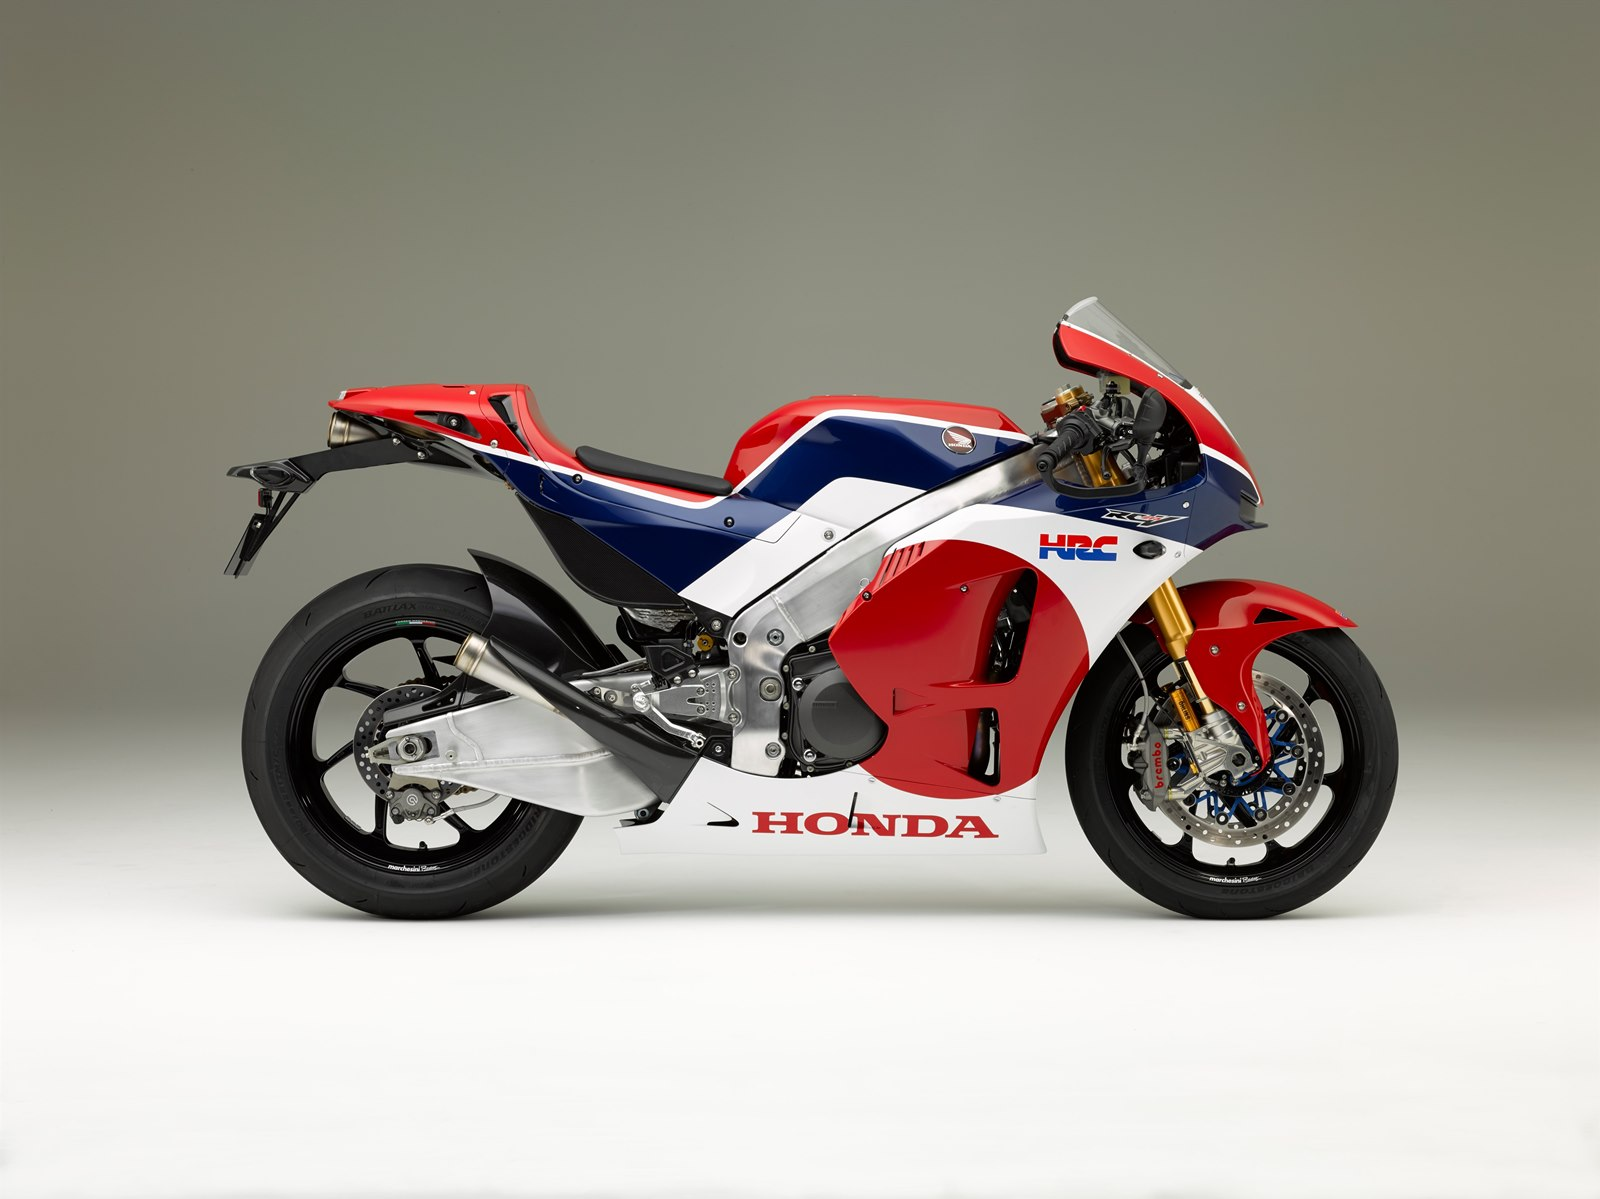 Honda RC213V-S right side view